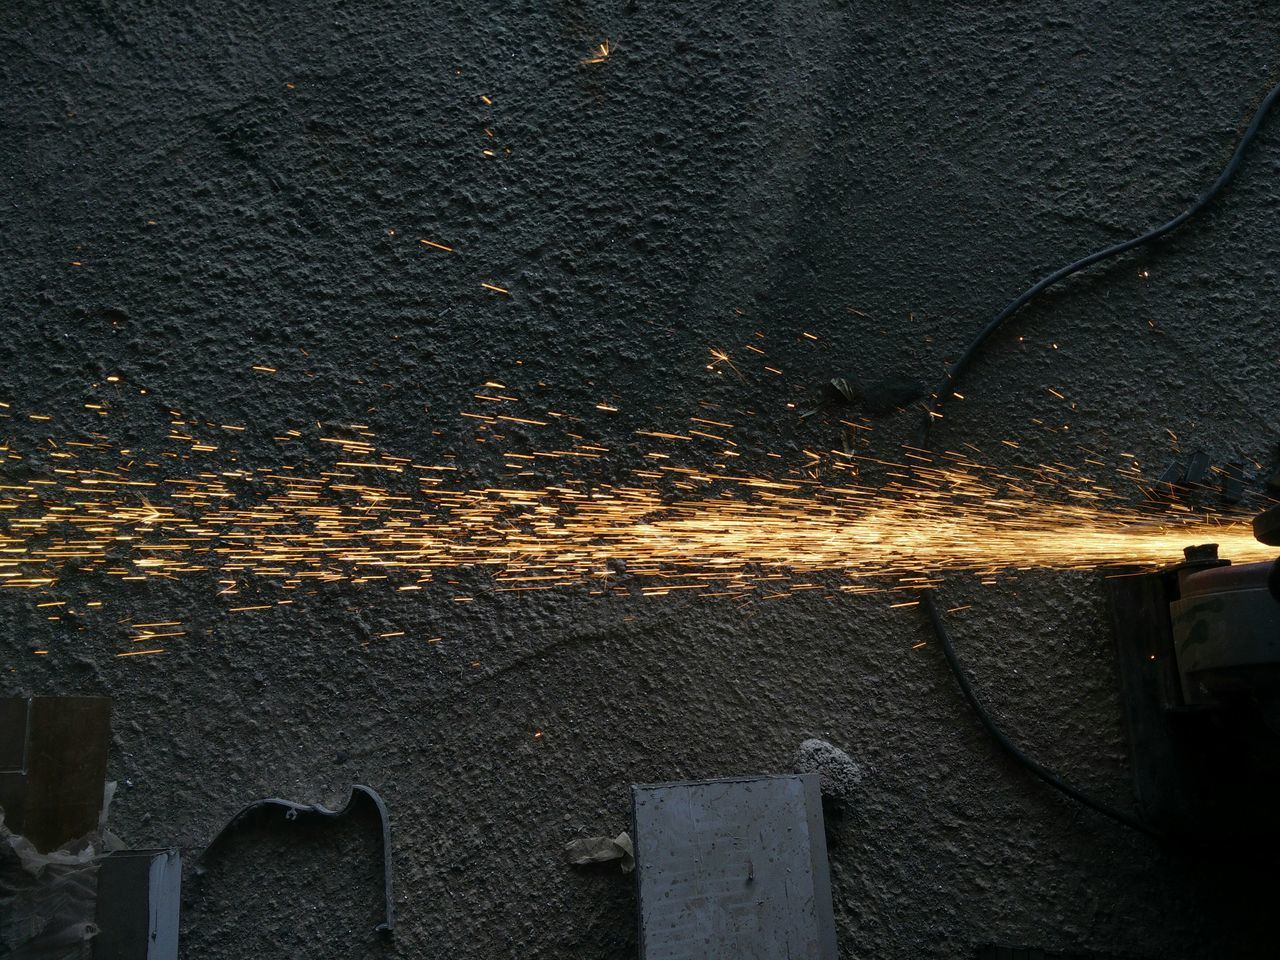 High Angle View Of Sparks Emitting From Grinder In Industry